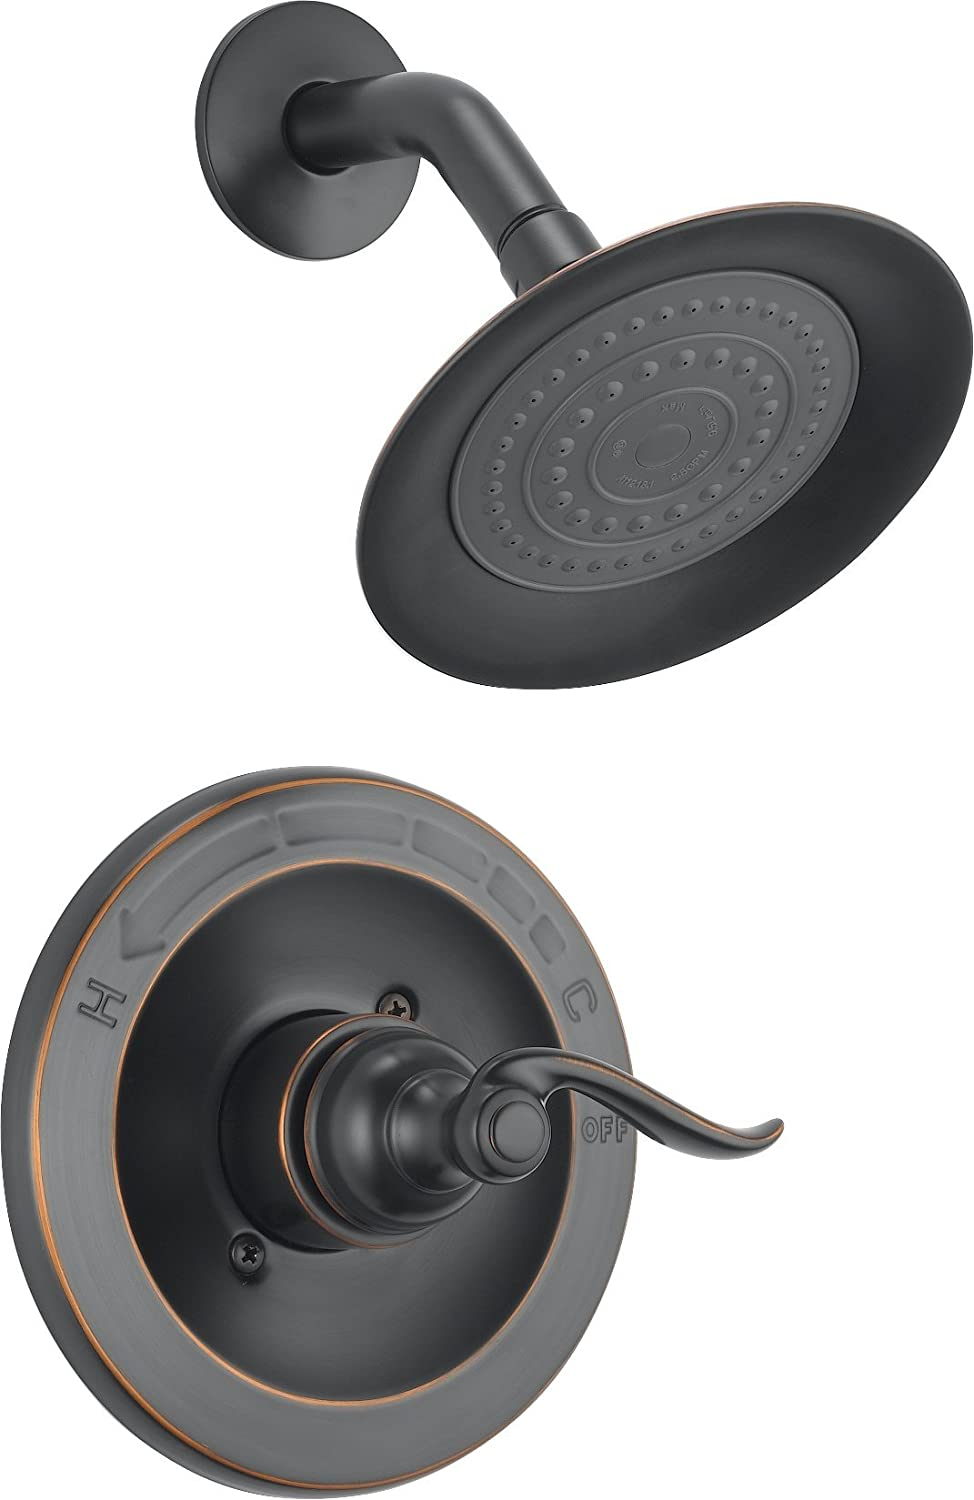 Delta Faucet Windemere Single-Function Shower Trim Kit with Single-Spray Shower Head, Oil Rubbed Bronze BT14296-OB (Valve Not Included)